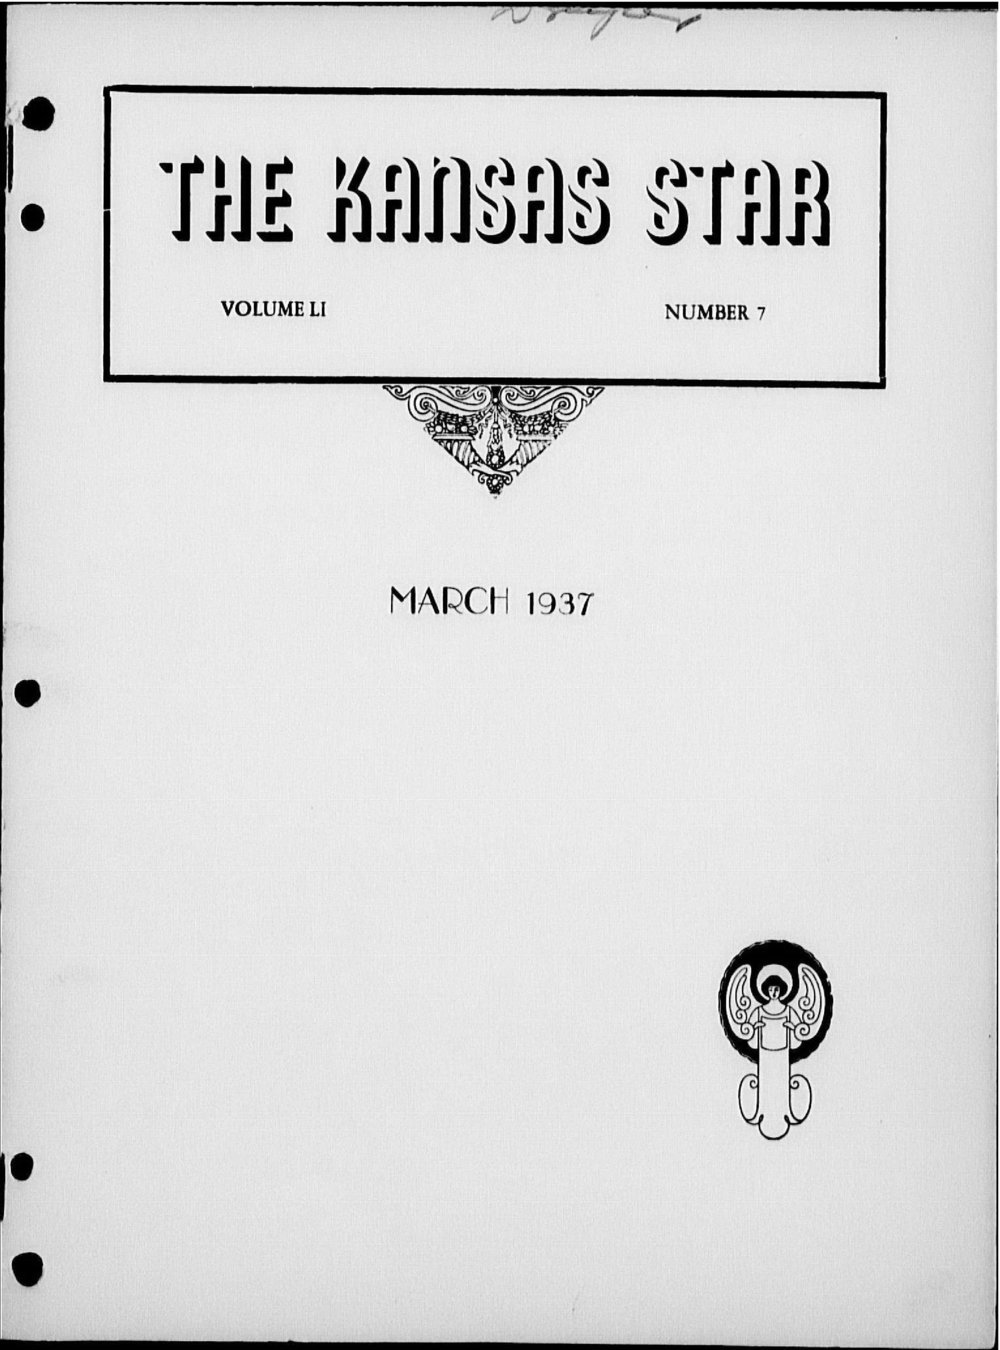 The Kansas Star, volume 51, number 7 - Front cover